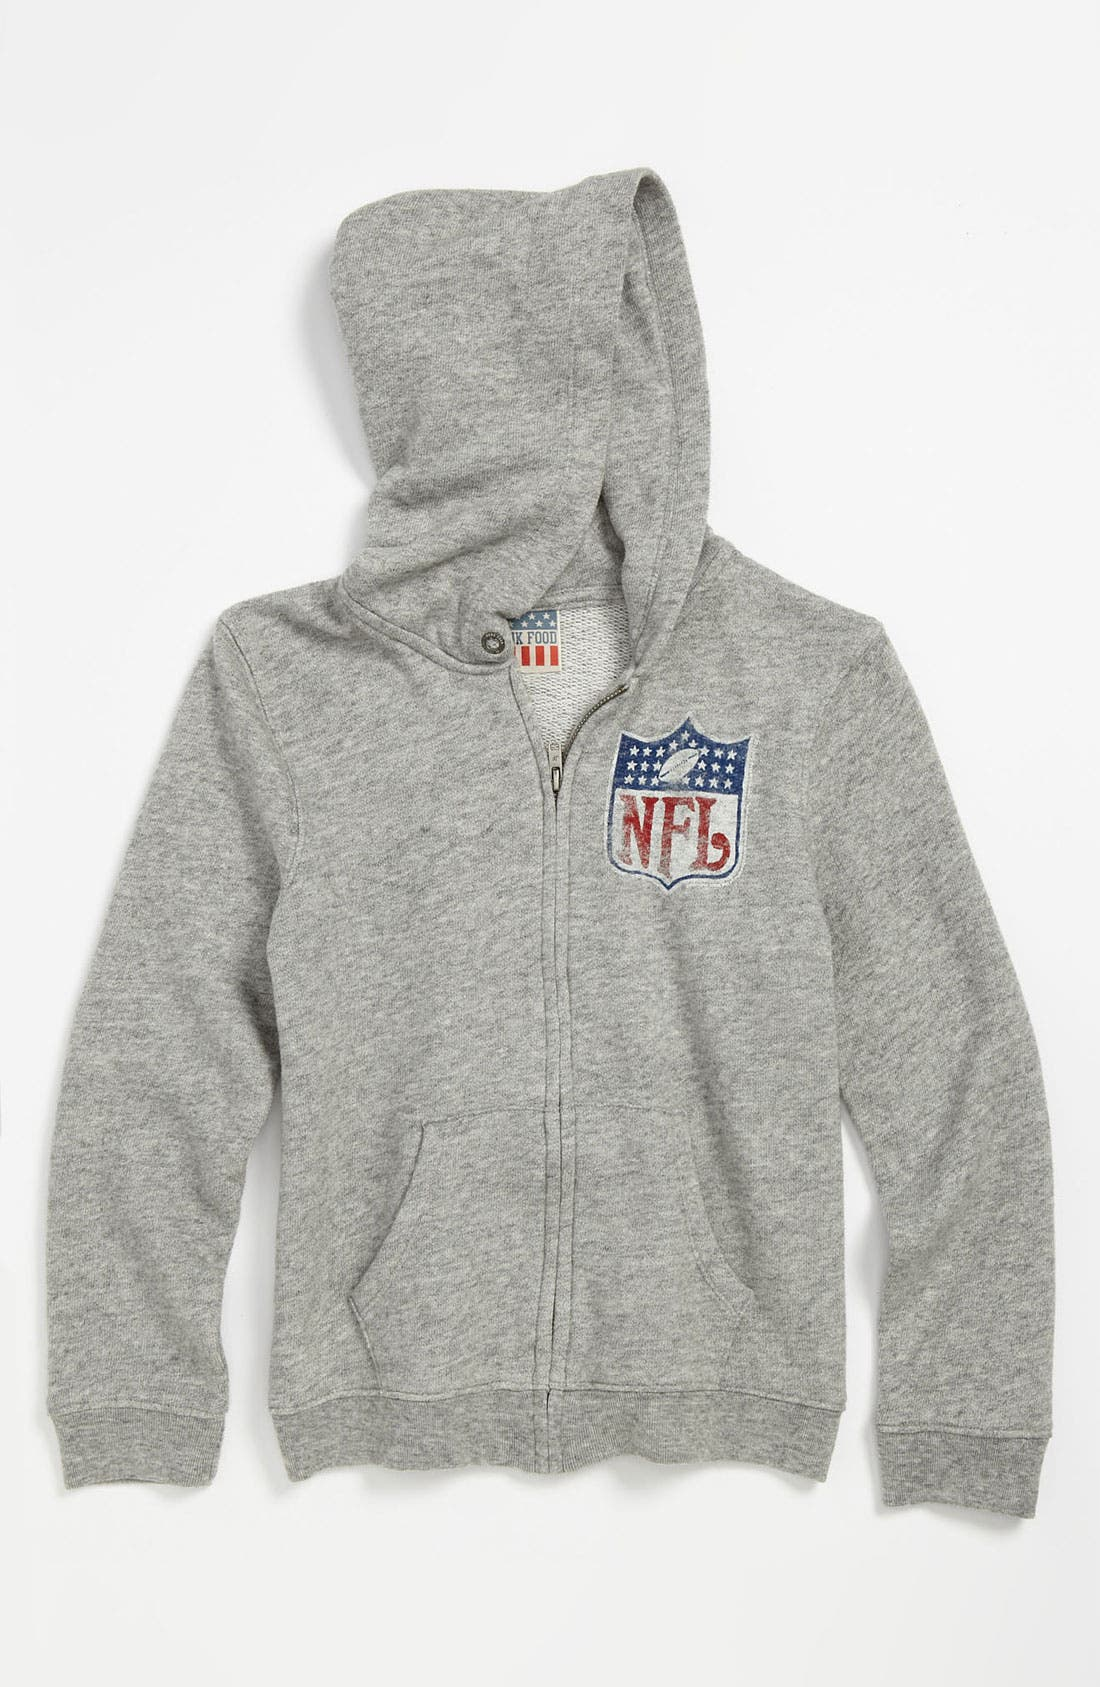 Main Image - Junk Food 'NFL Shield' Hoodie (Little Boys & Big Boys)